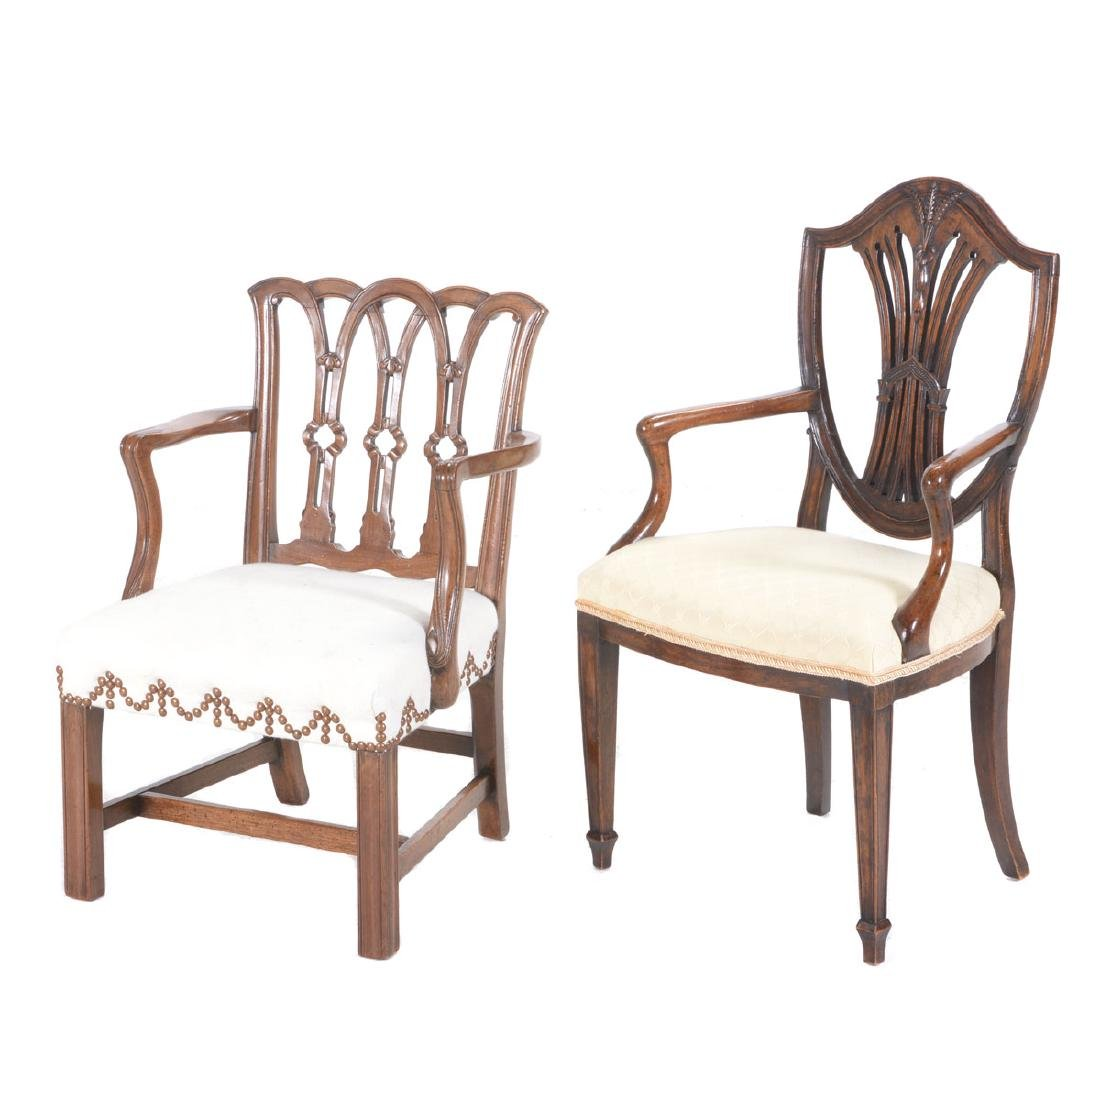 Two George III Style Mahogany Childís Armchairs.